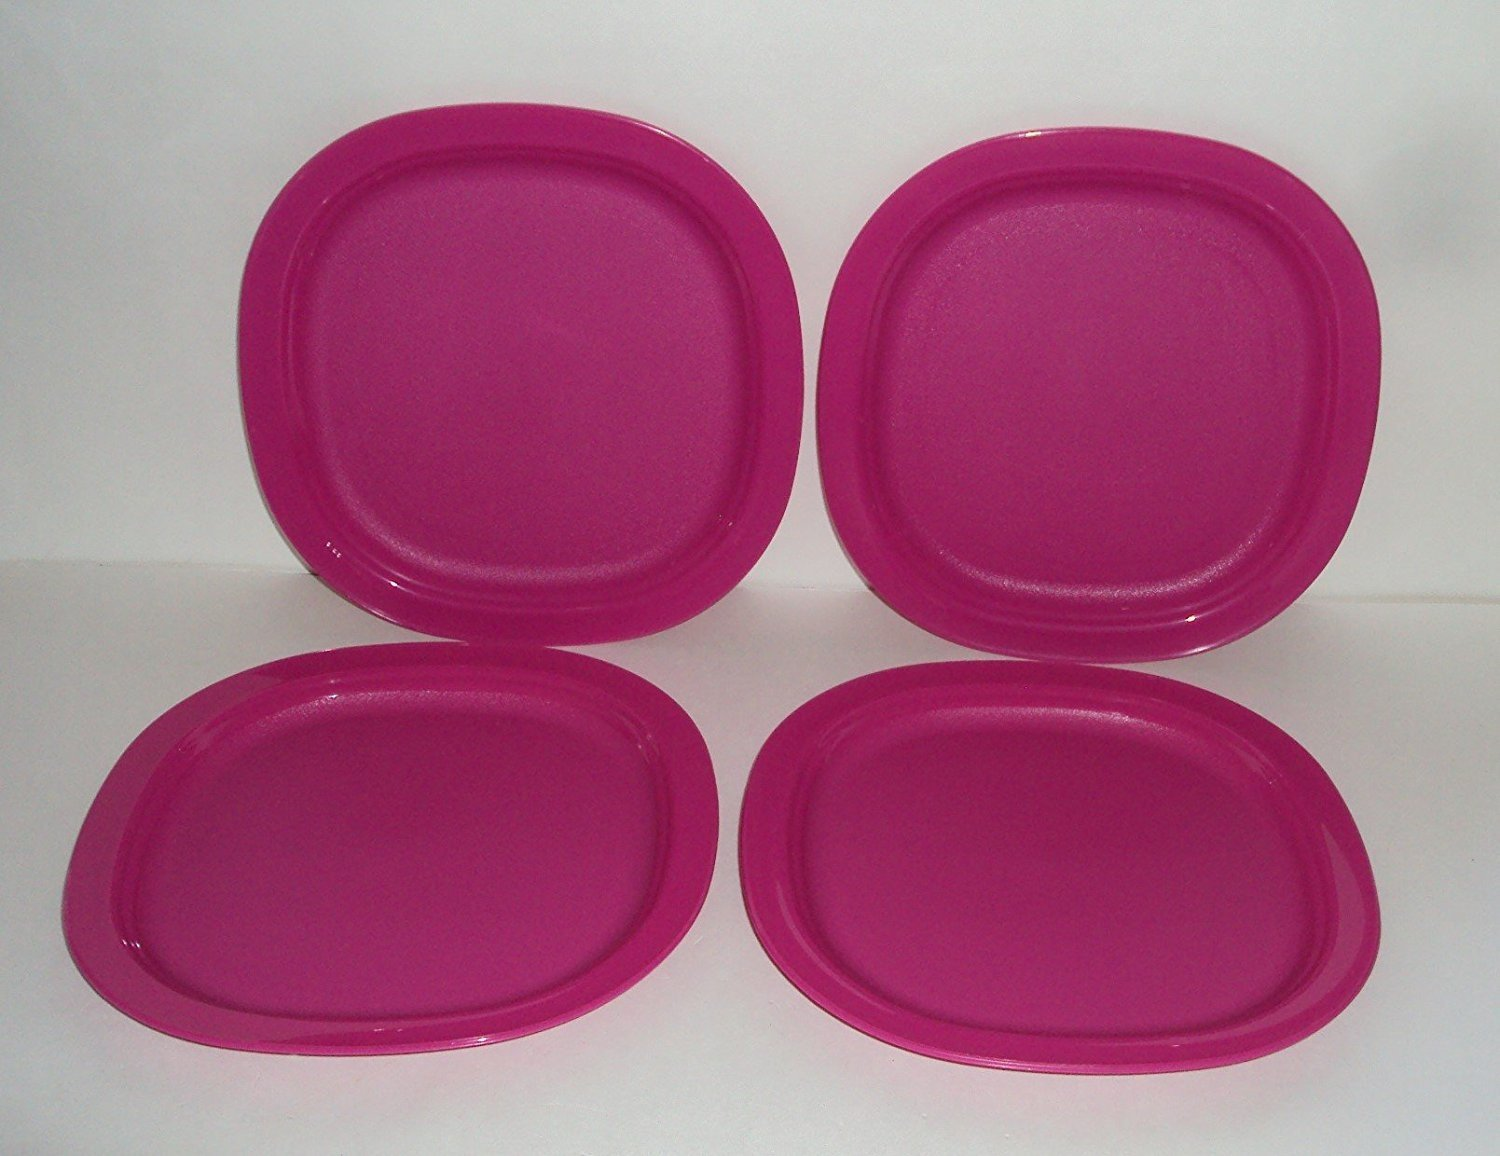 Tupperware Set of 4 Open House Microwave 7 3/4 Inch Dessert Plates Fuchsia Pink by Tupperware (Image #2)